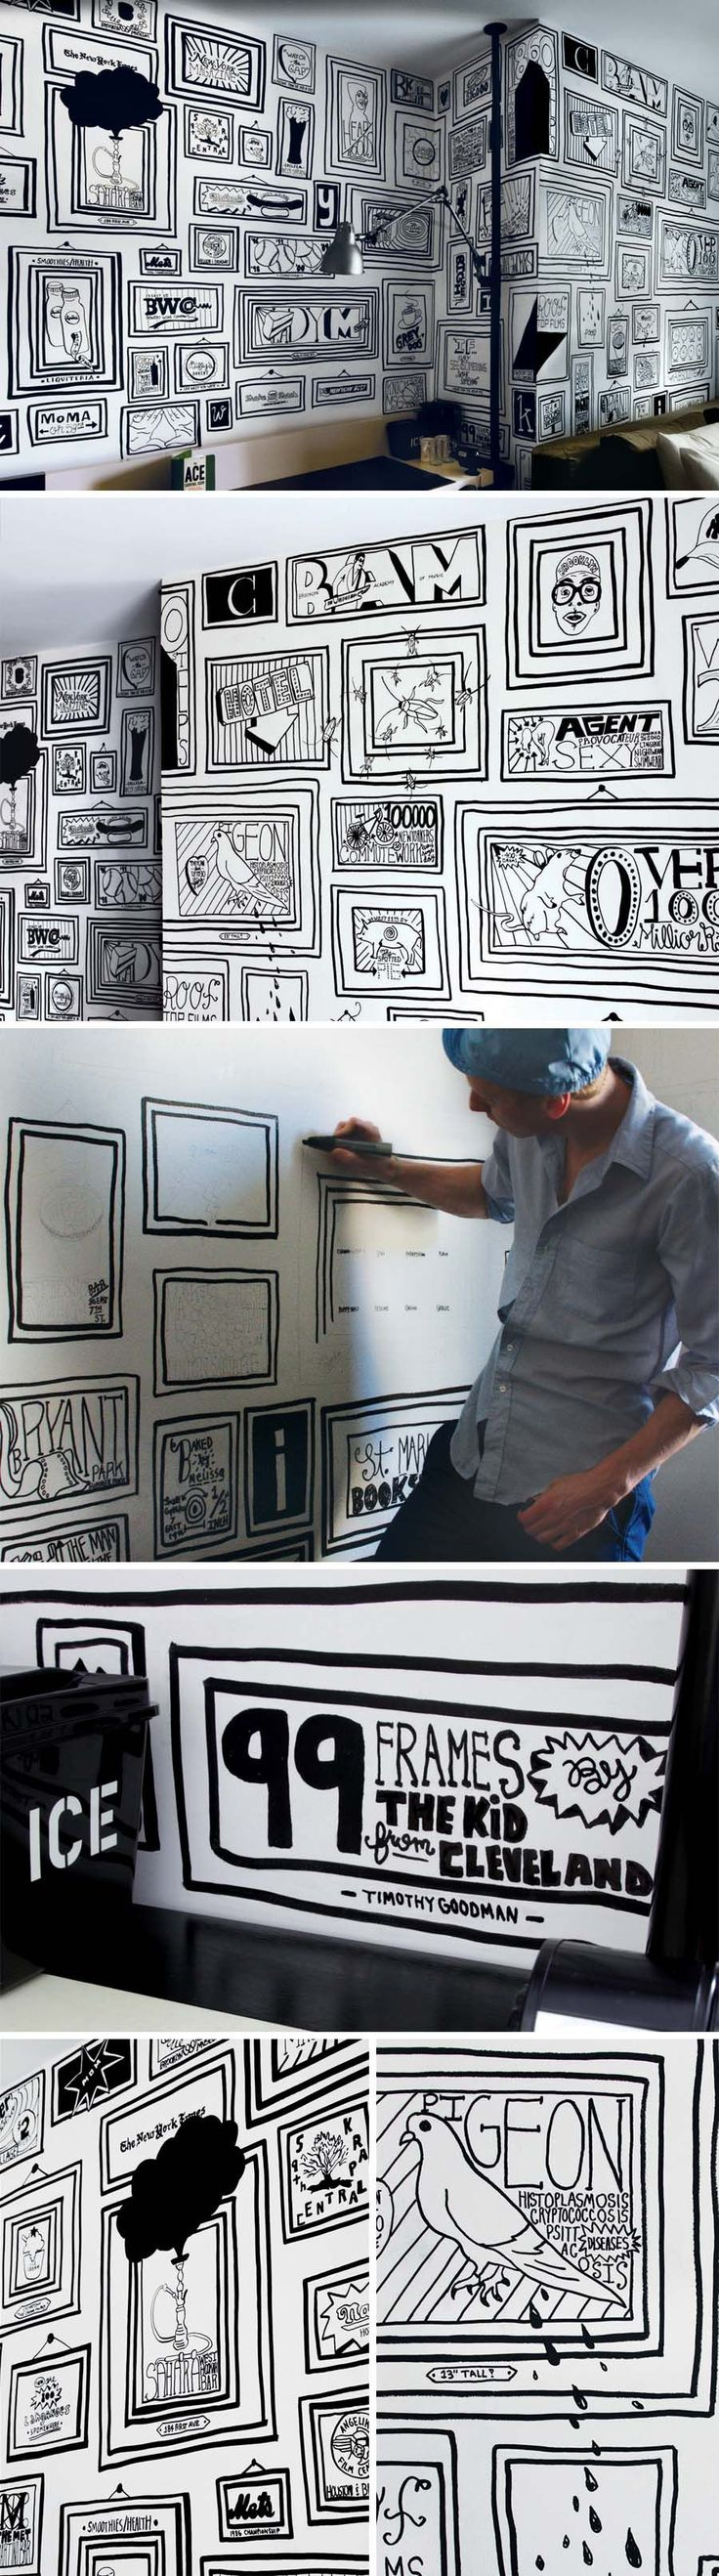 best 10 timothy goodman ideas on pinterest wall drawing ace hotel mural by timothy goodman writing on the walls 2009